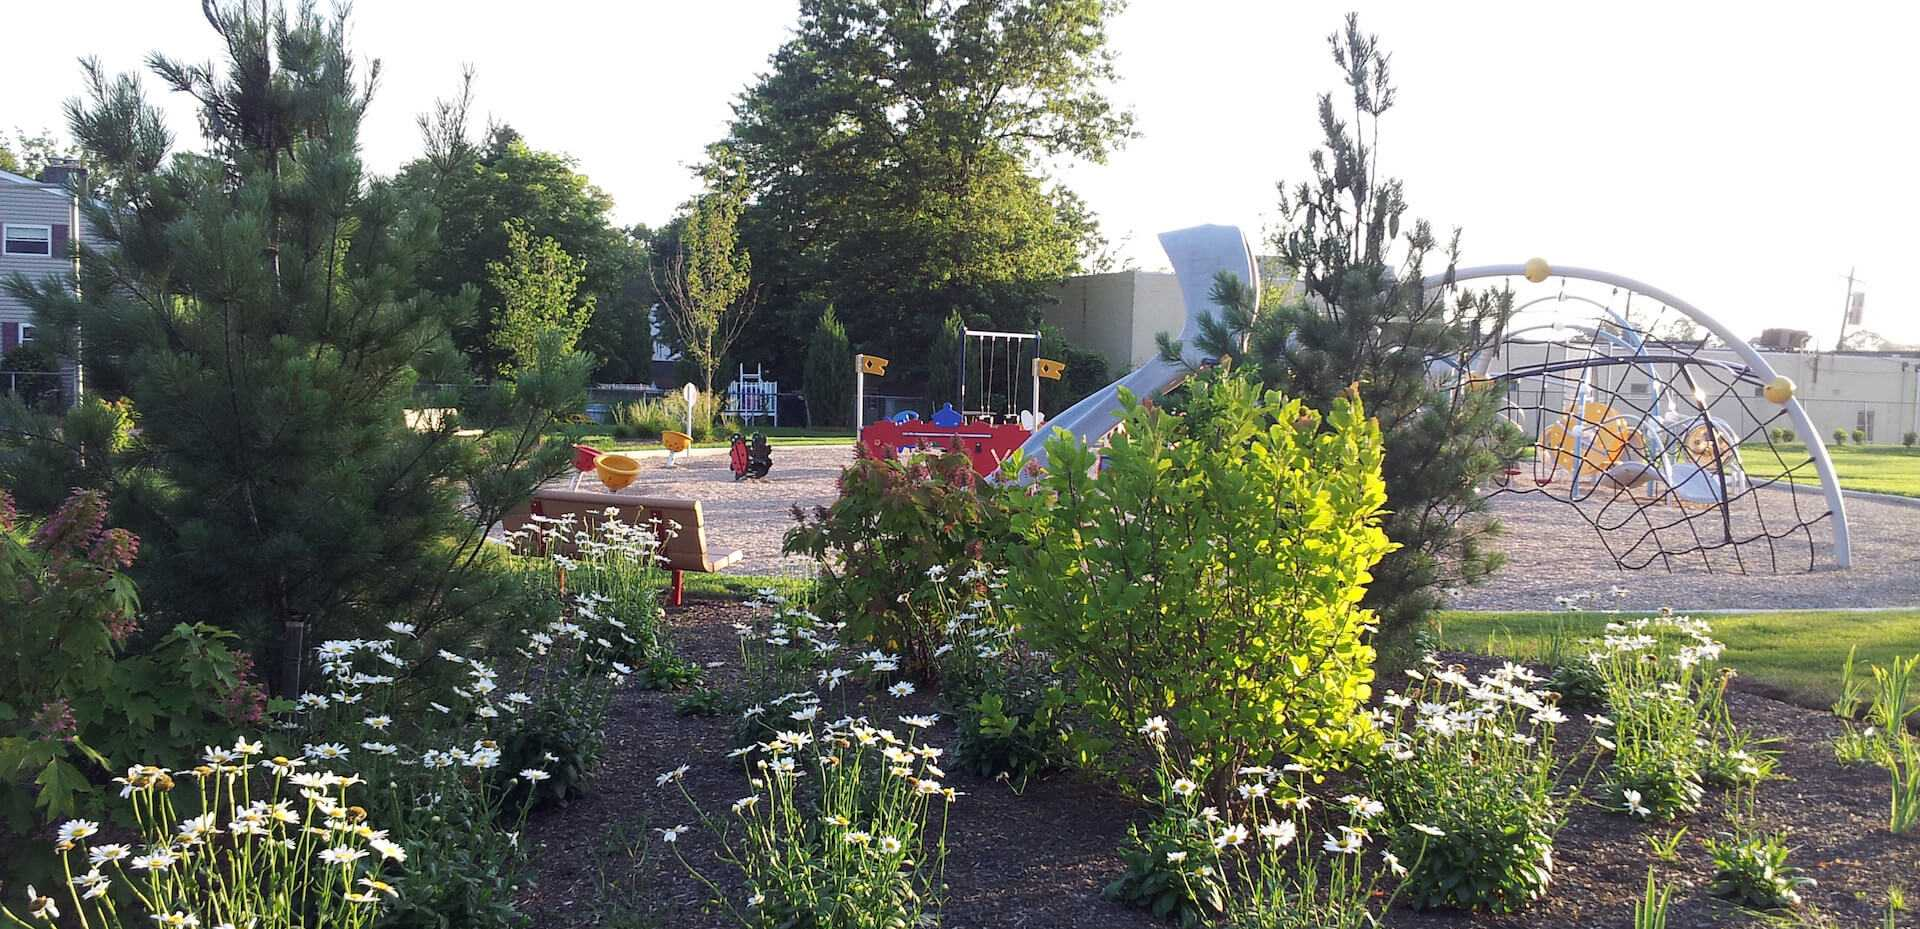 landscaping surrounding the playground area